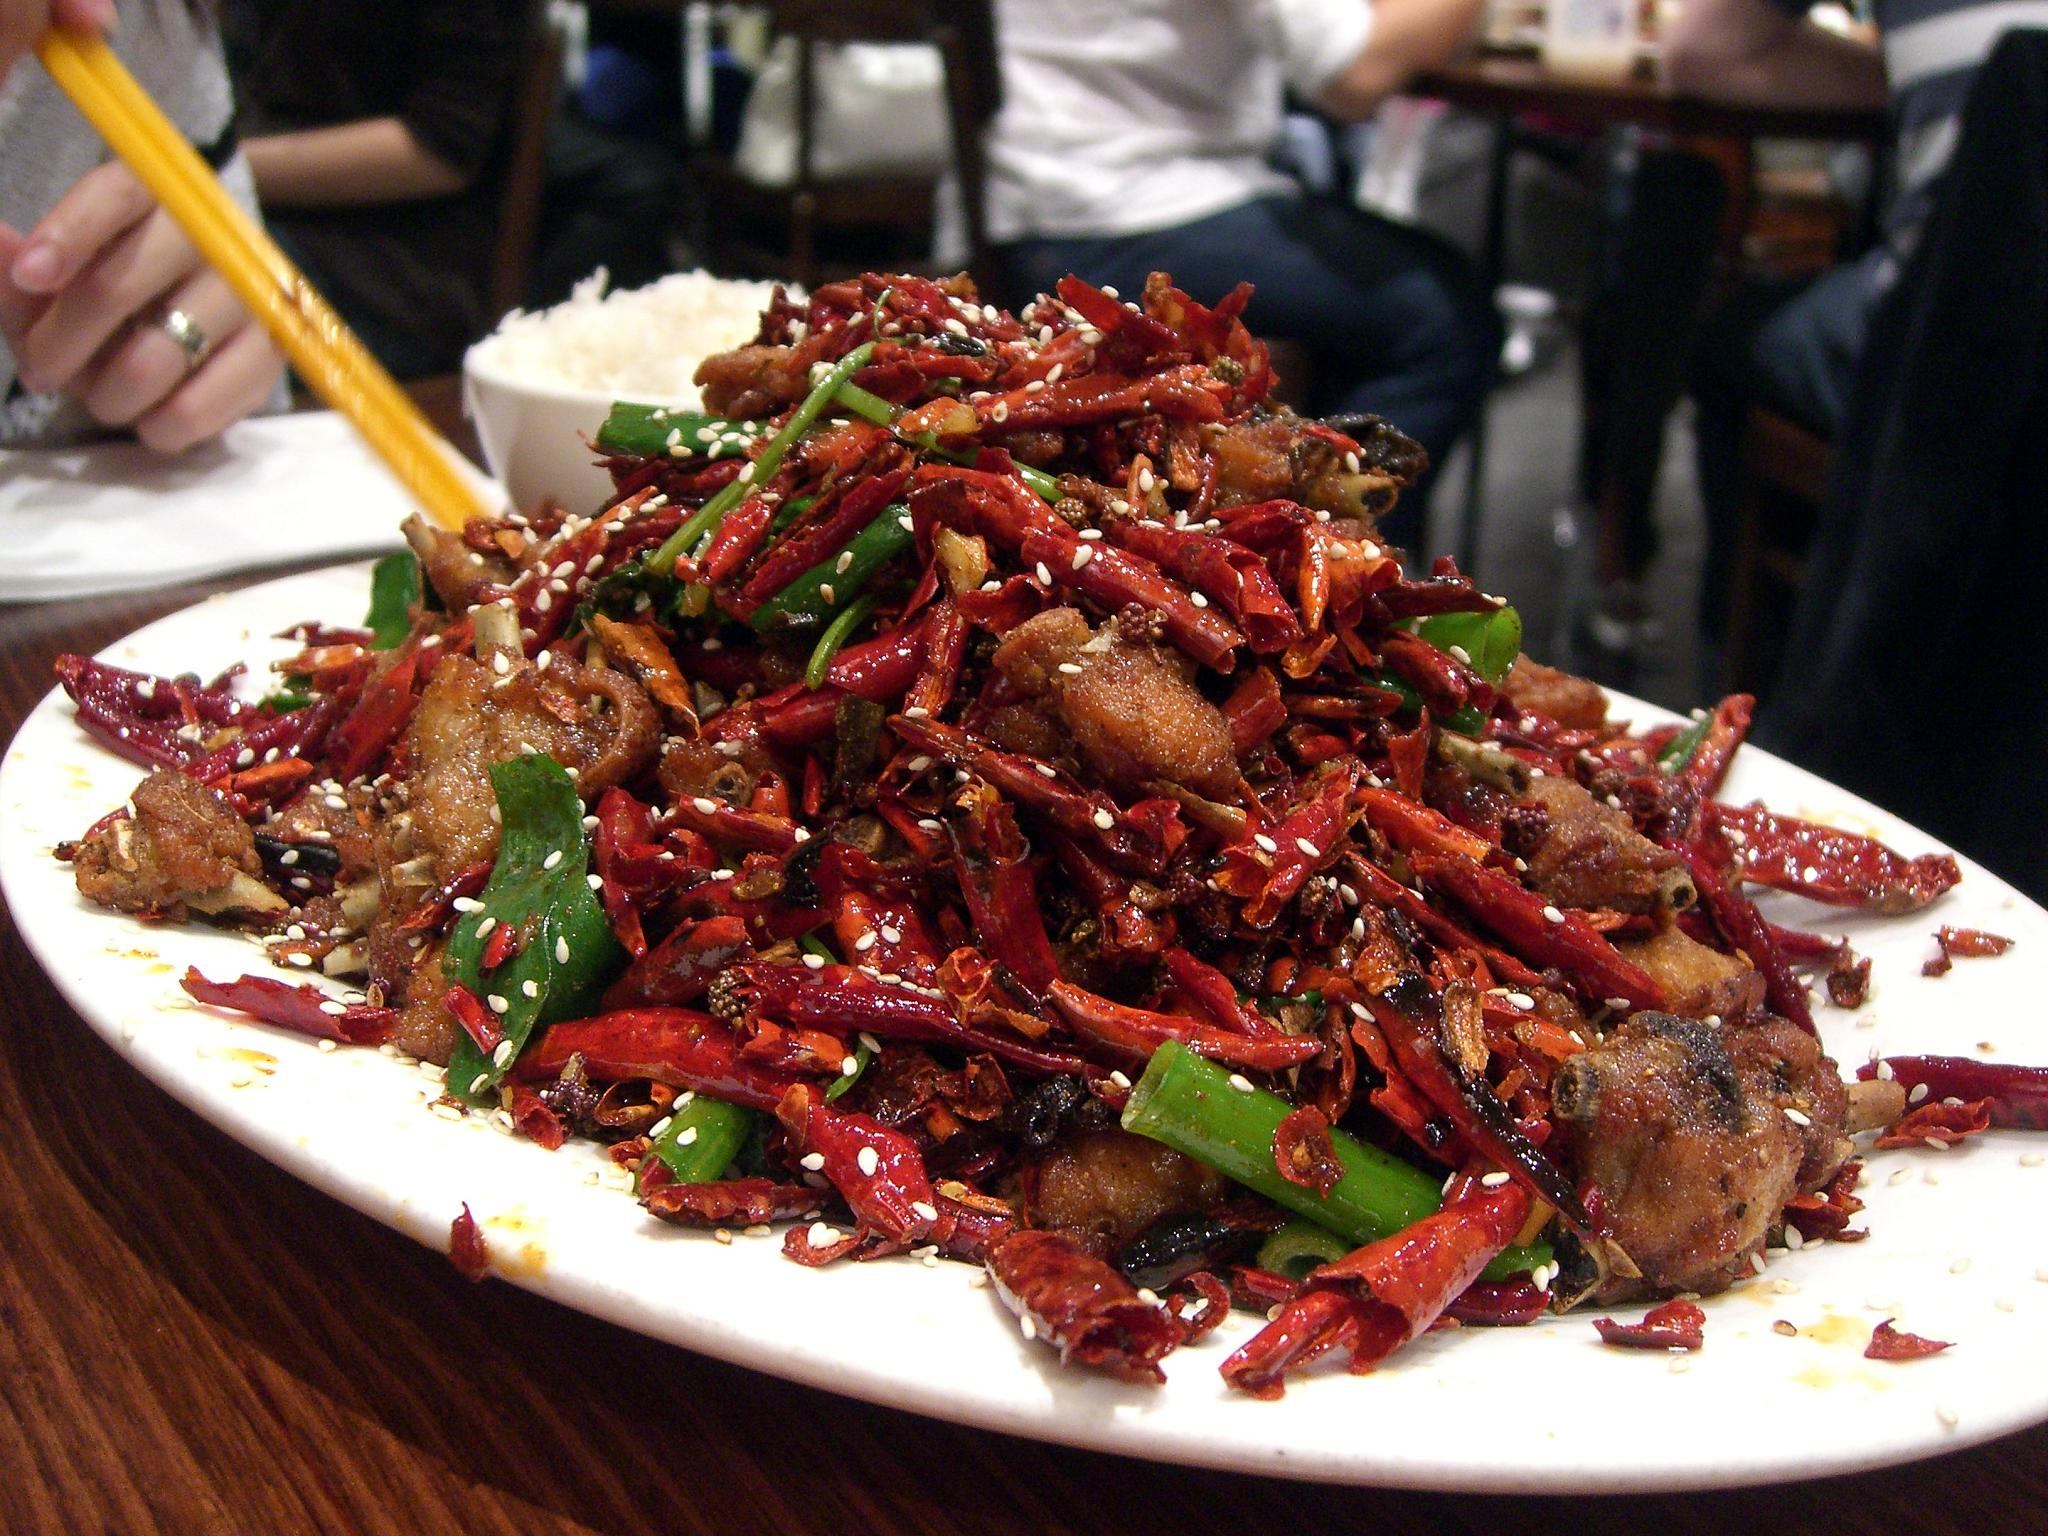 Hot Cuisine 8 Hidden Health Benefits Of Spicy Food Supported By Science